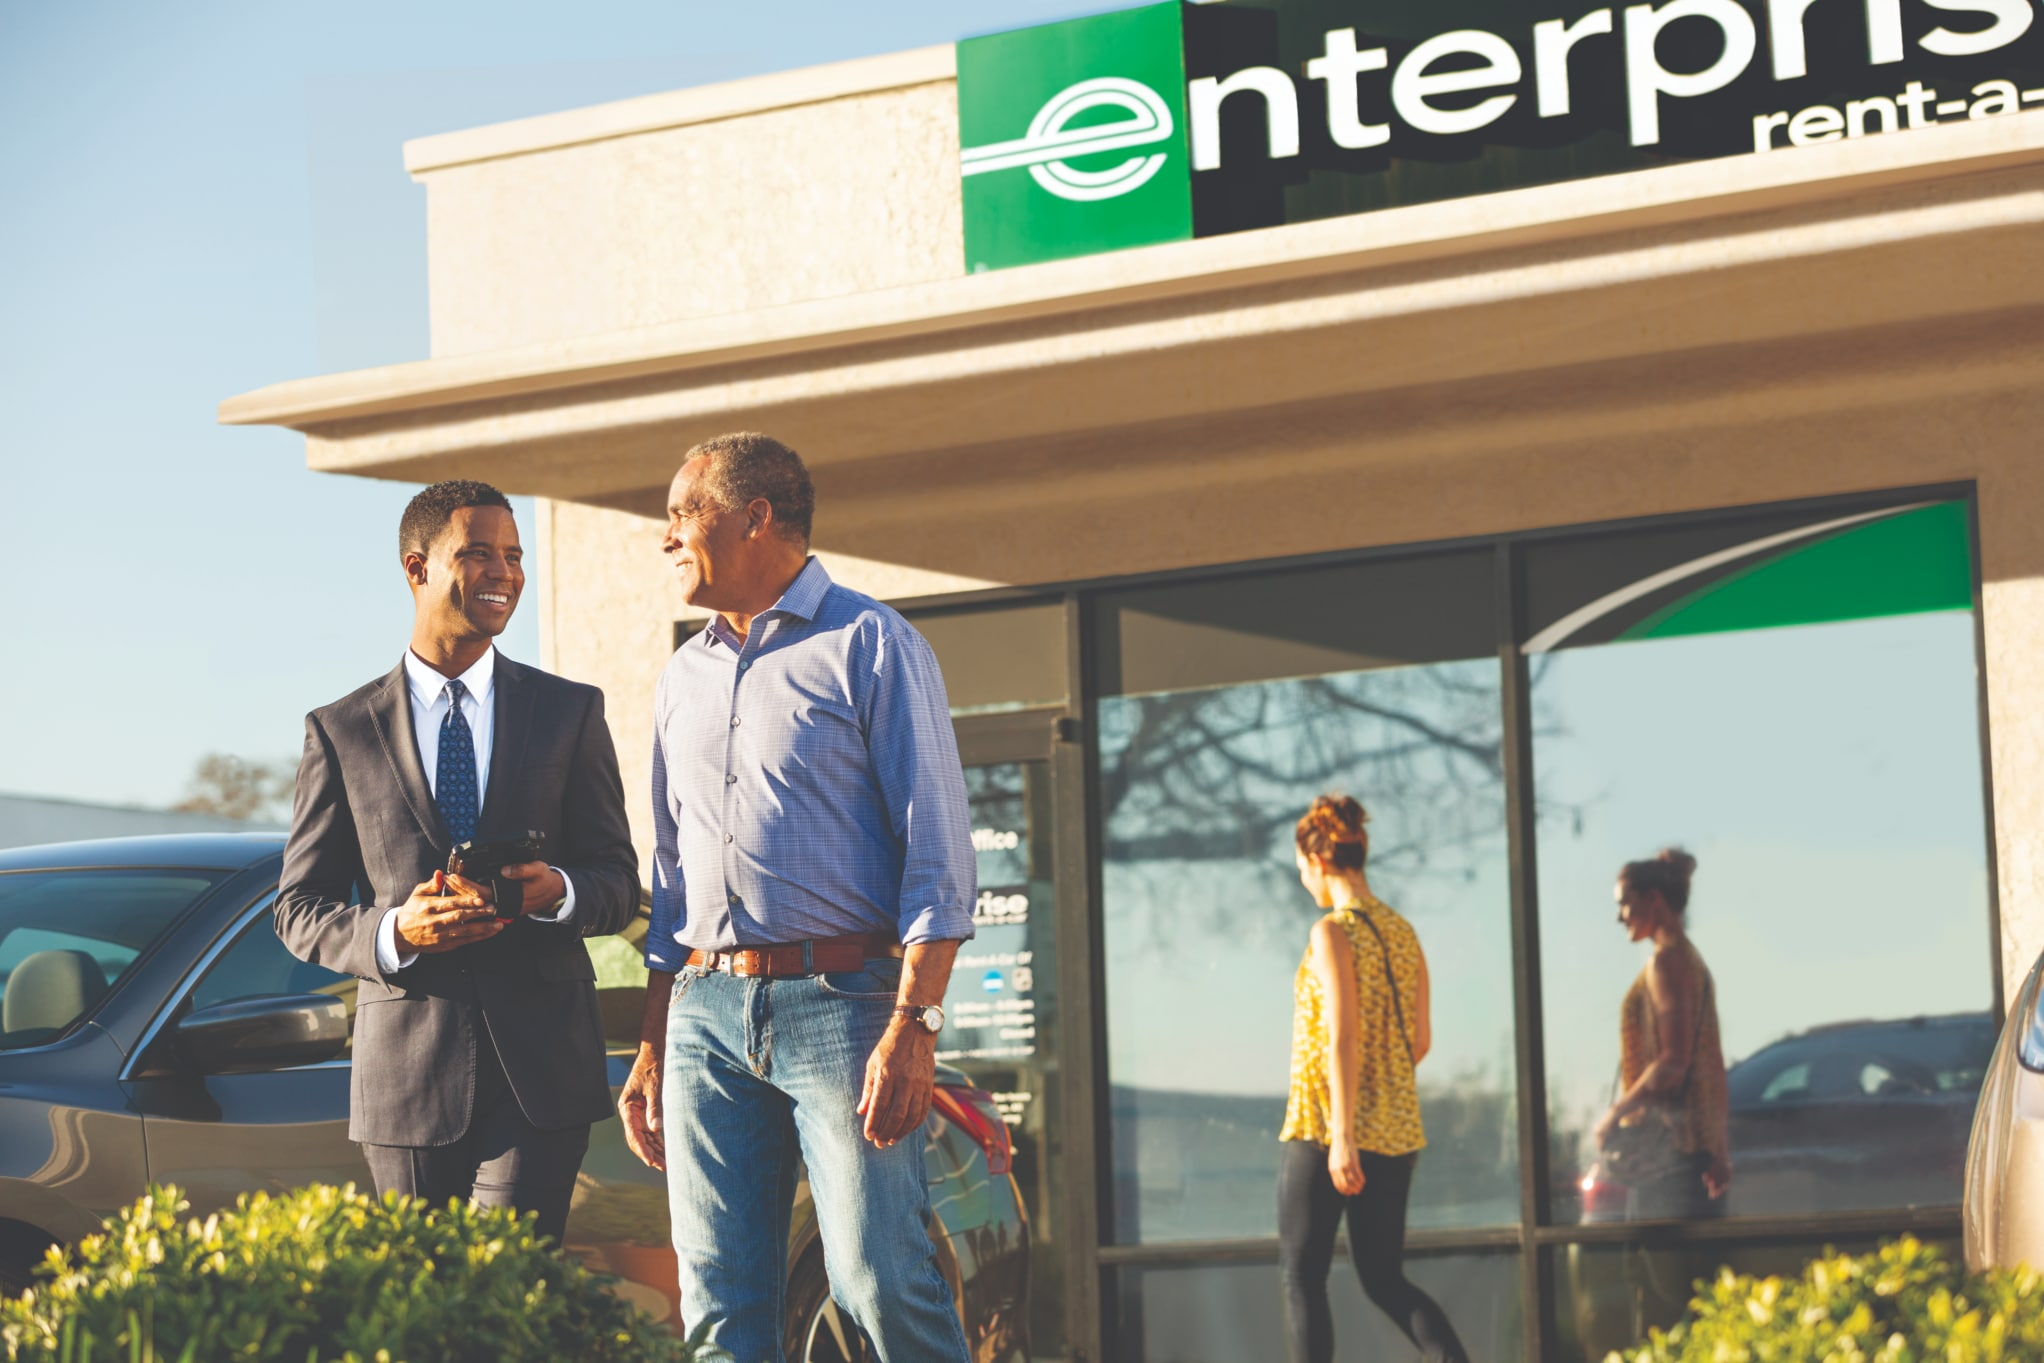 Mietwagen Und Transporter In Germany Enterprise Rent A Car